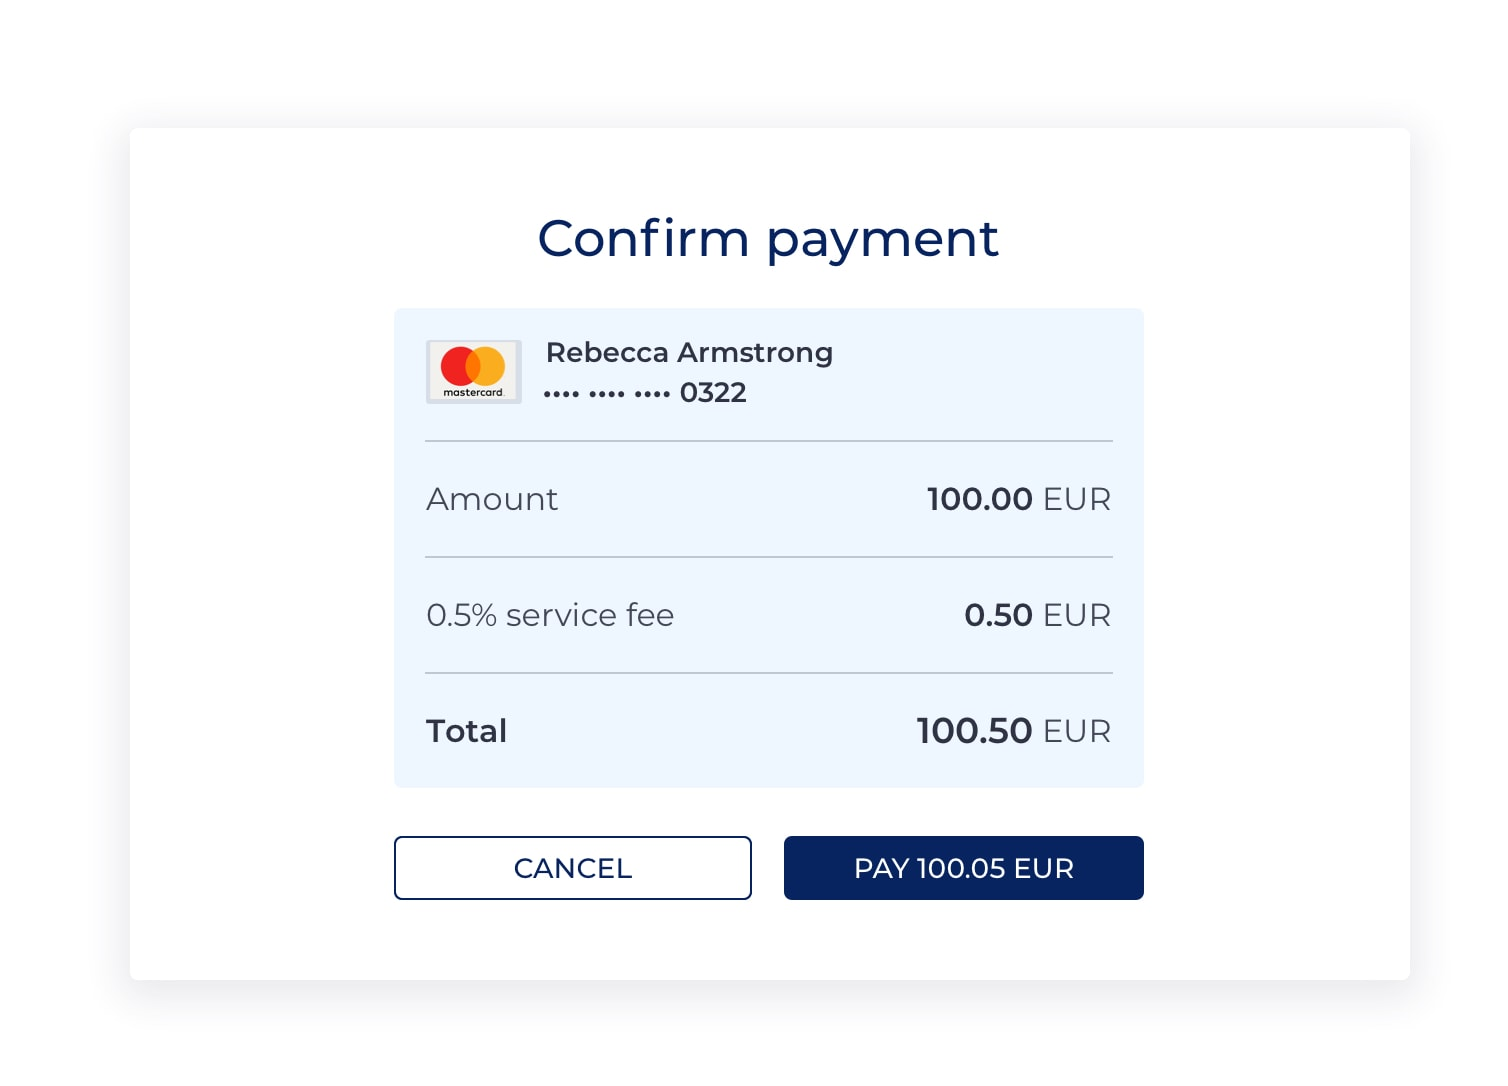 Screenshot of the Confirm payment screen